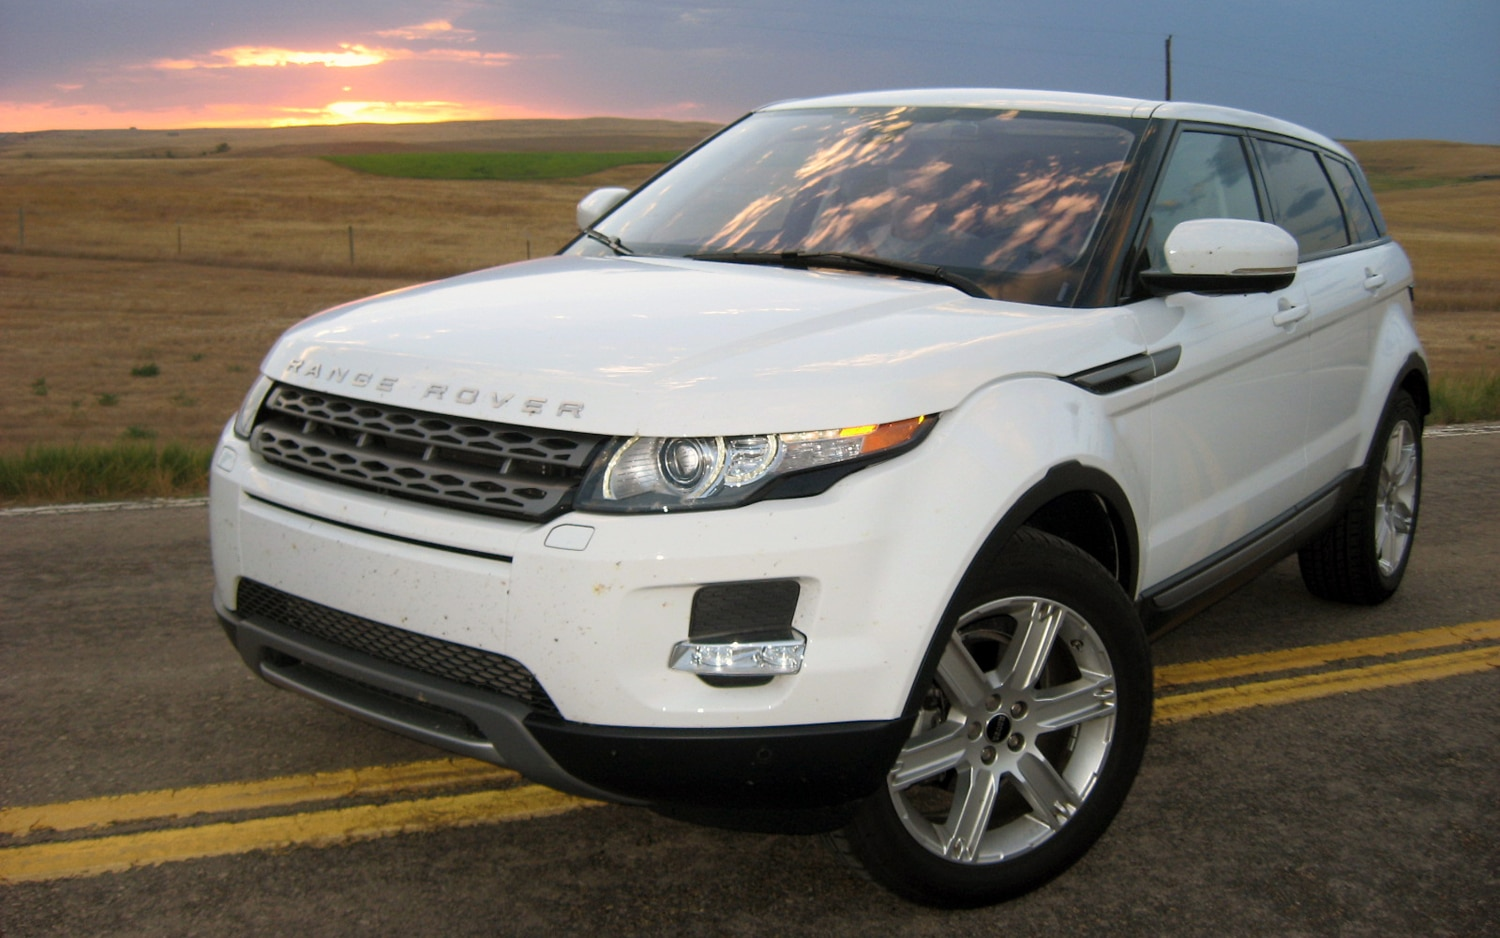 2012 Land Rover Range Rover Evoque Front Left Side View2